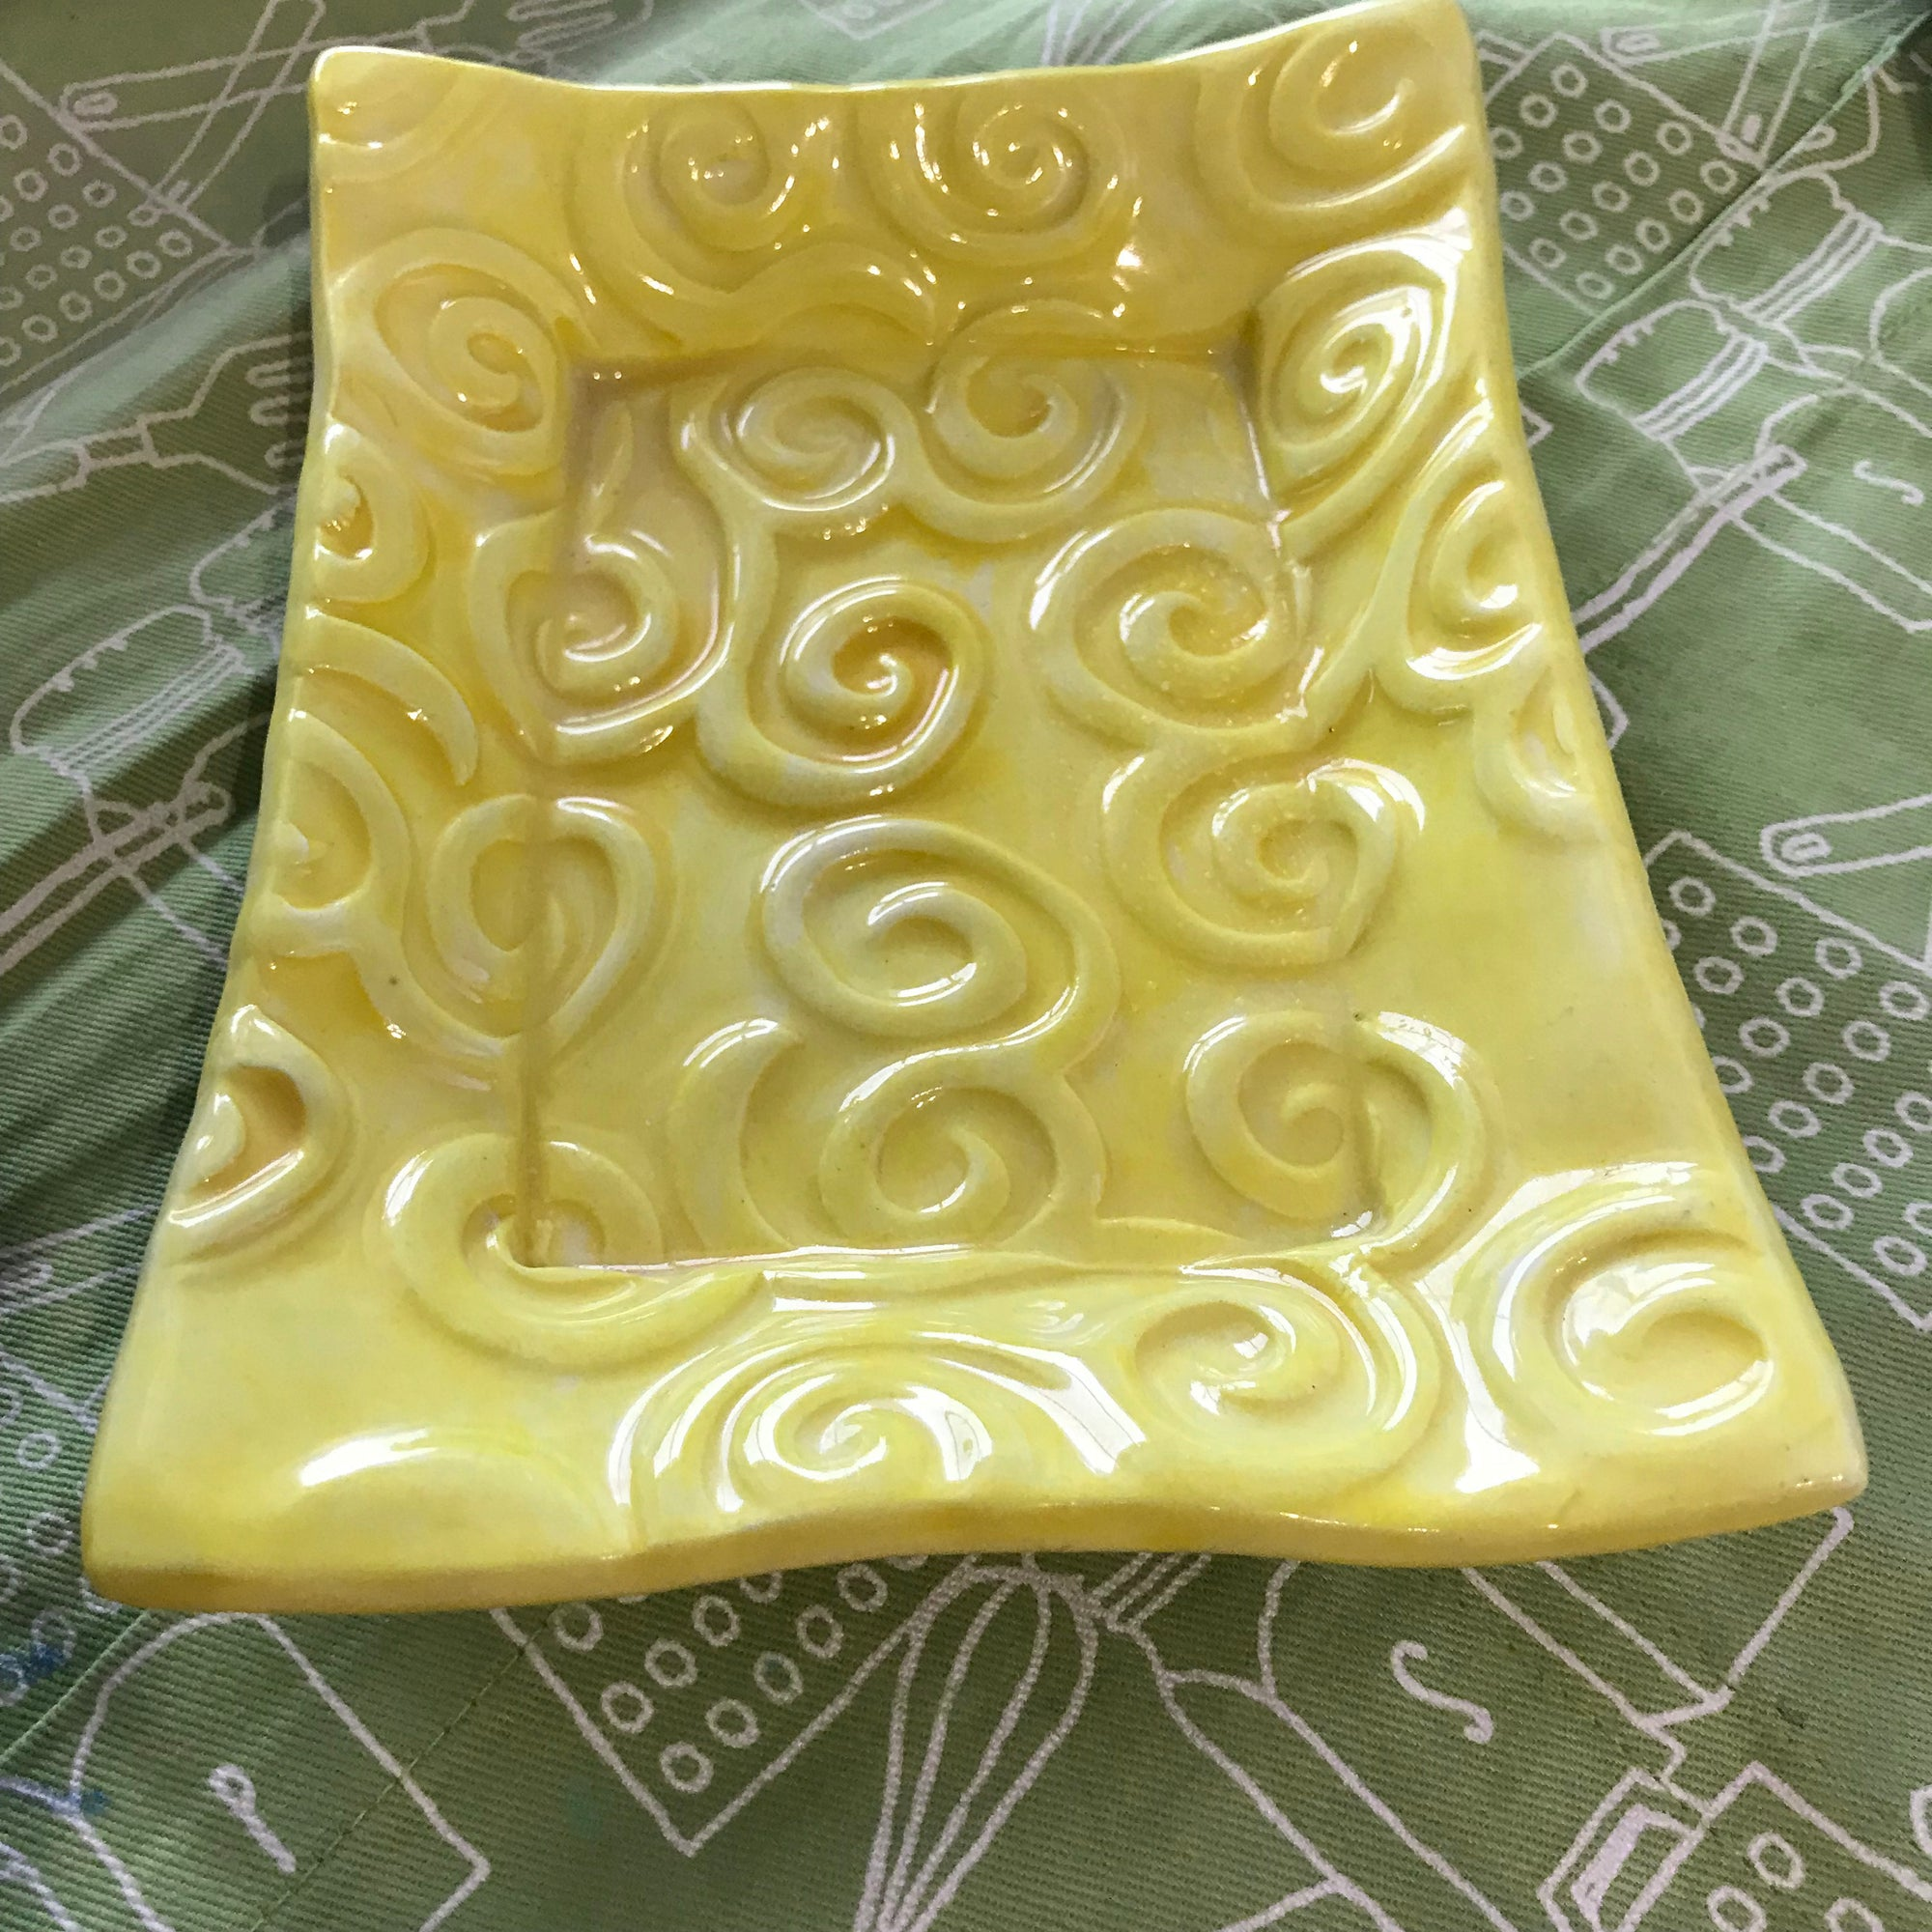 A Handmade Pottery Tray Glazed In A Happy Yellow Color.